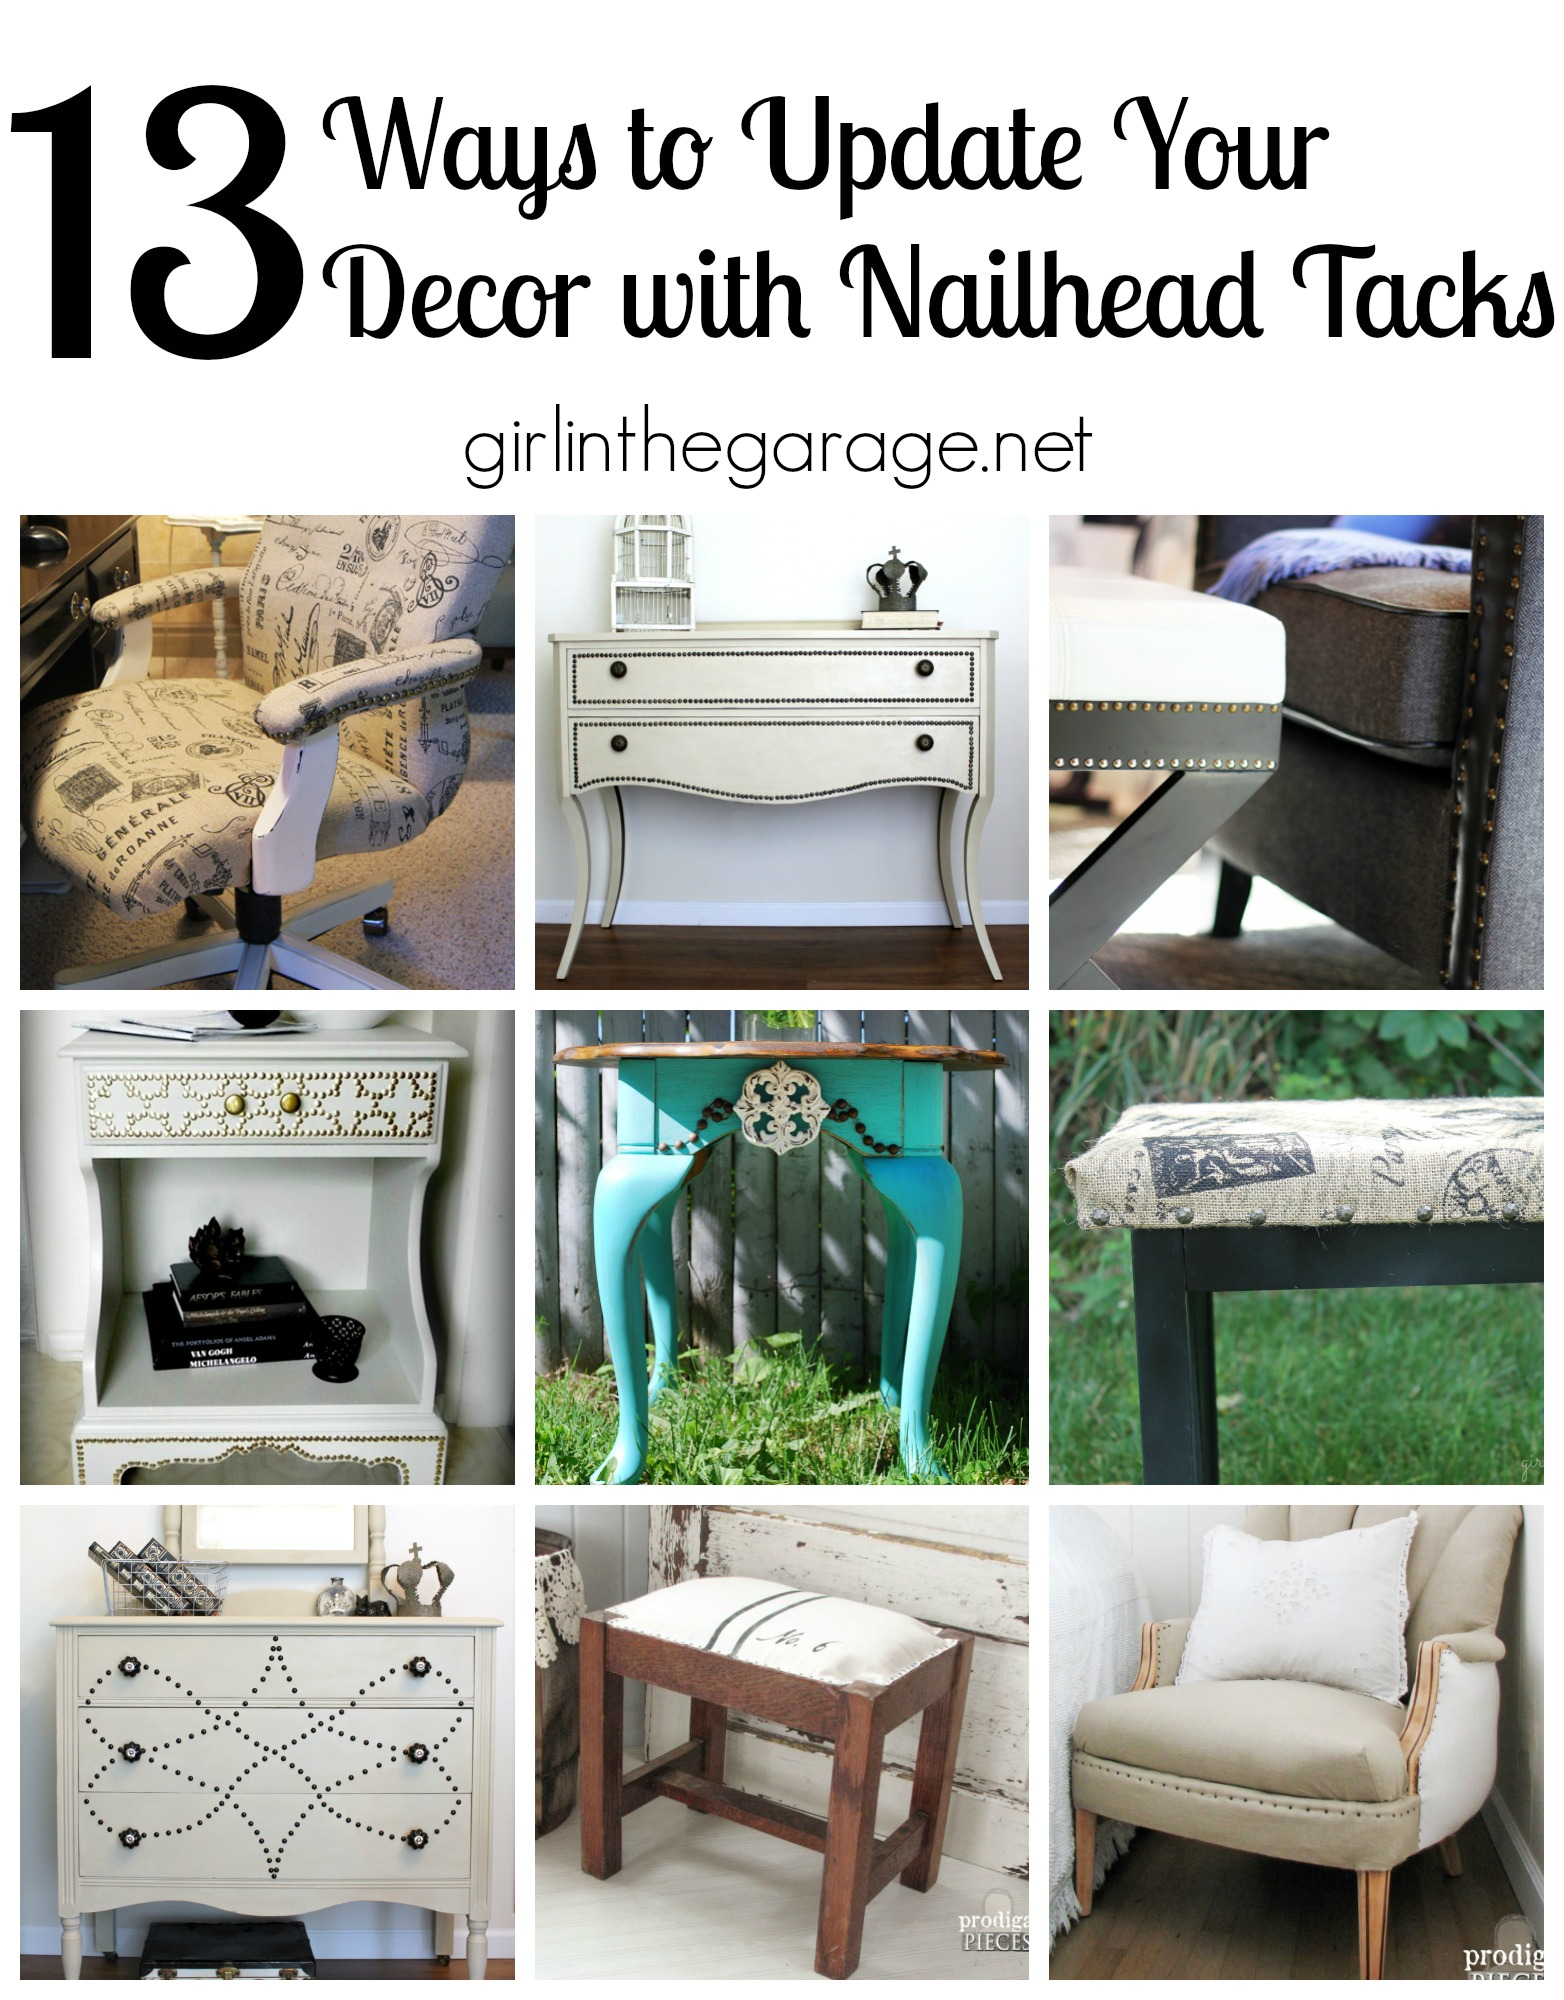 13 ways to update furniture with nailhead tacks - girlinthegarage.net